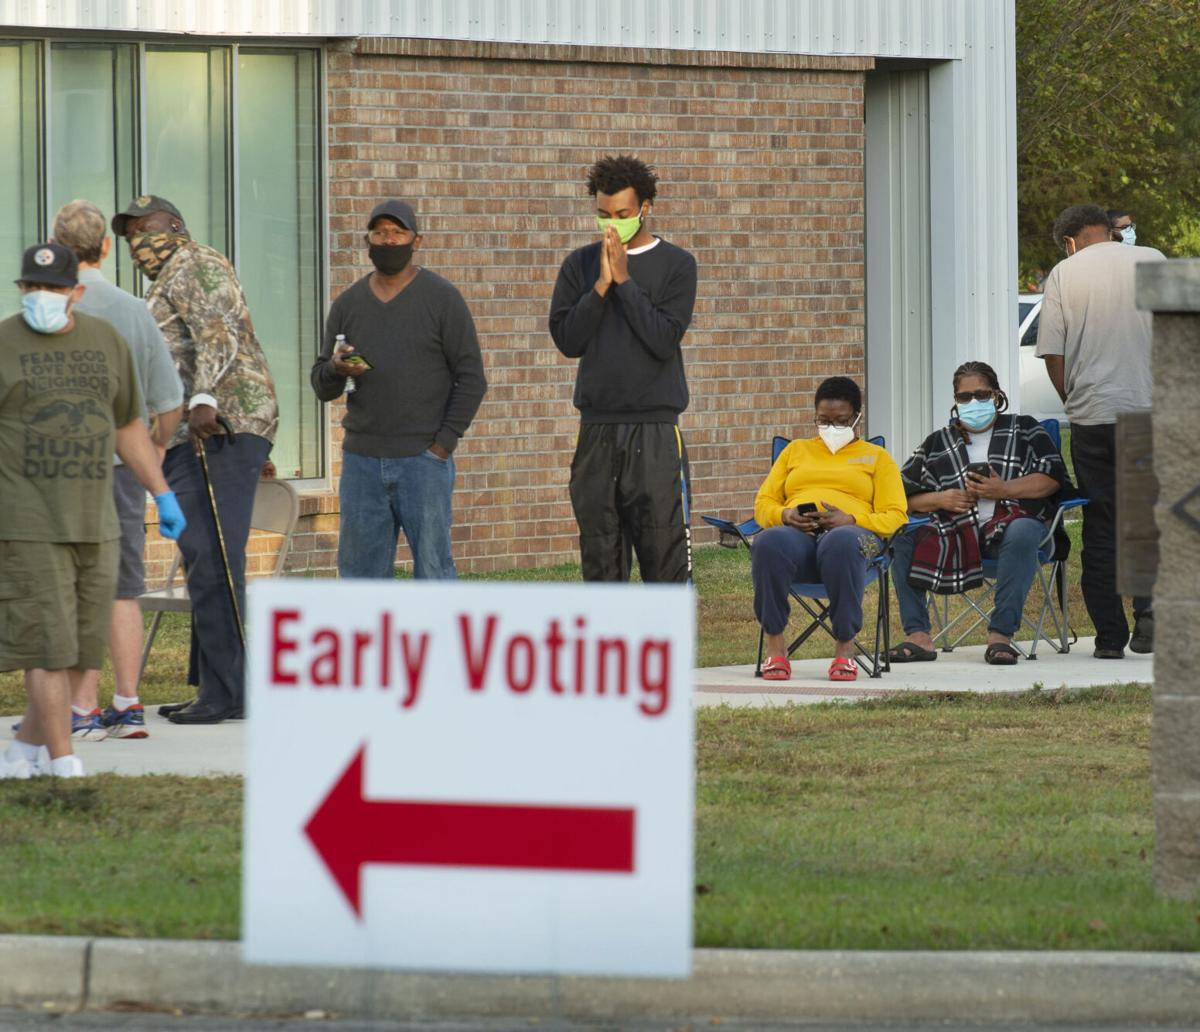 BR.earlyvoting.102820 TS CROP 512.jpg